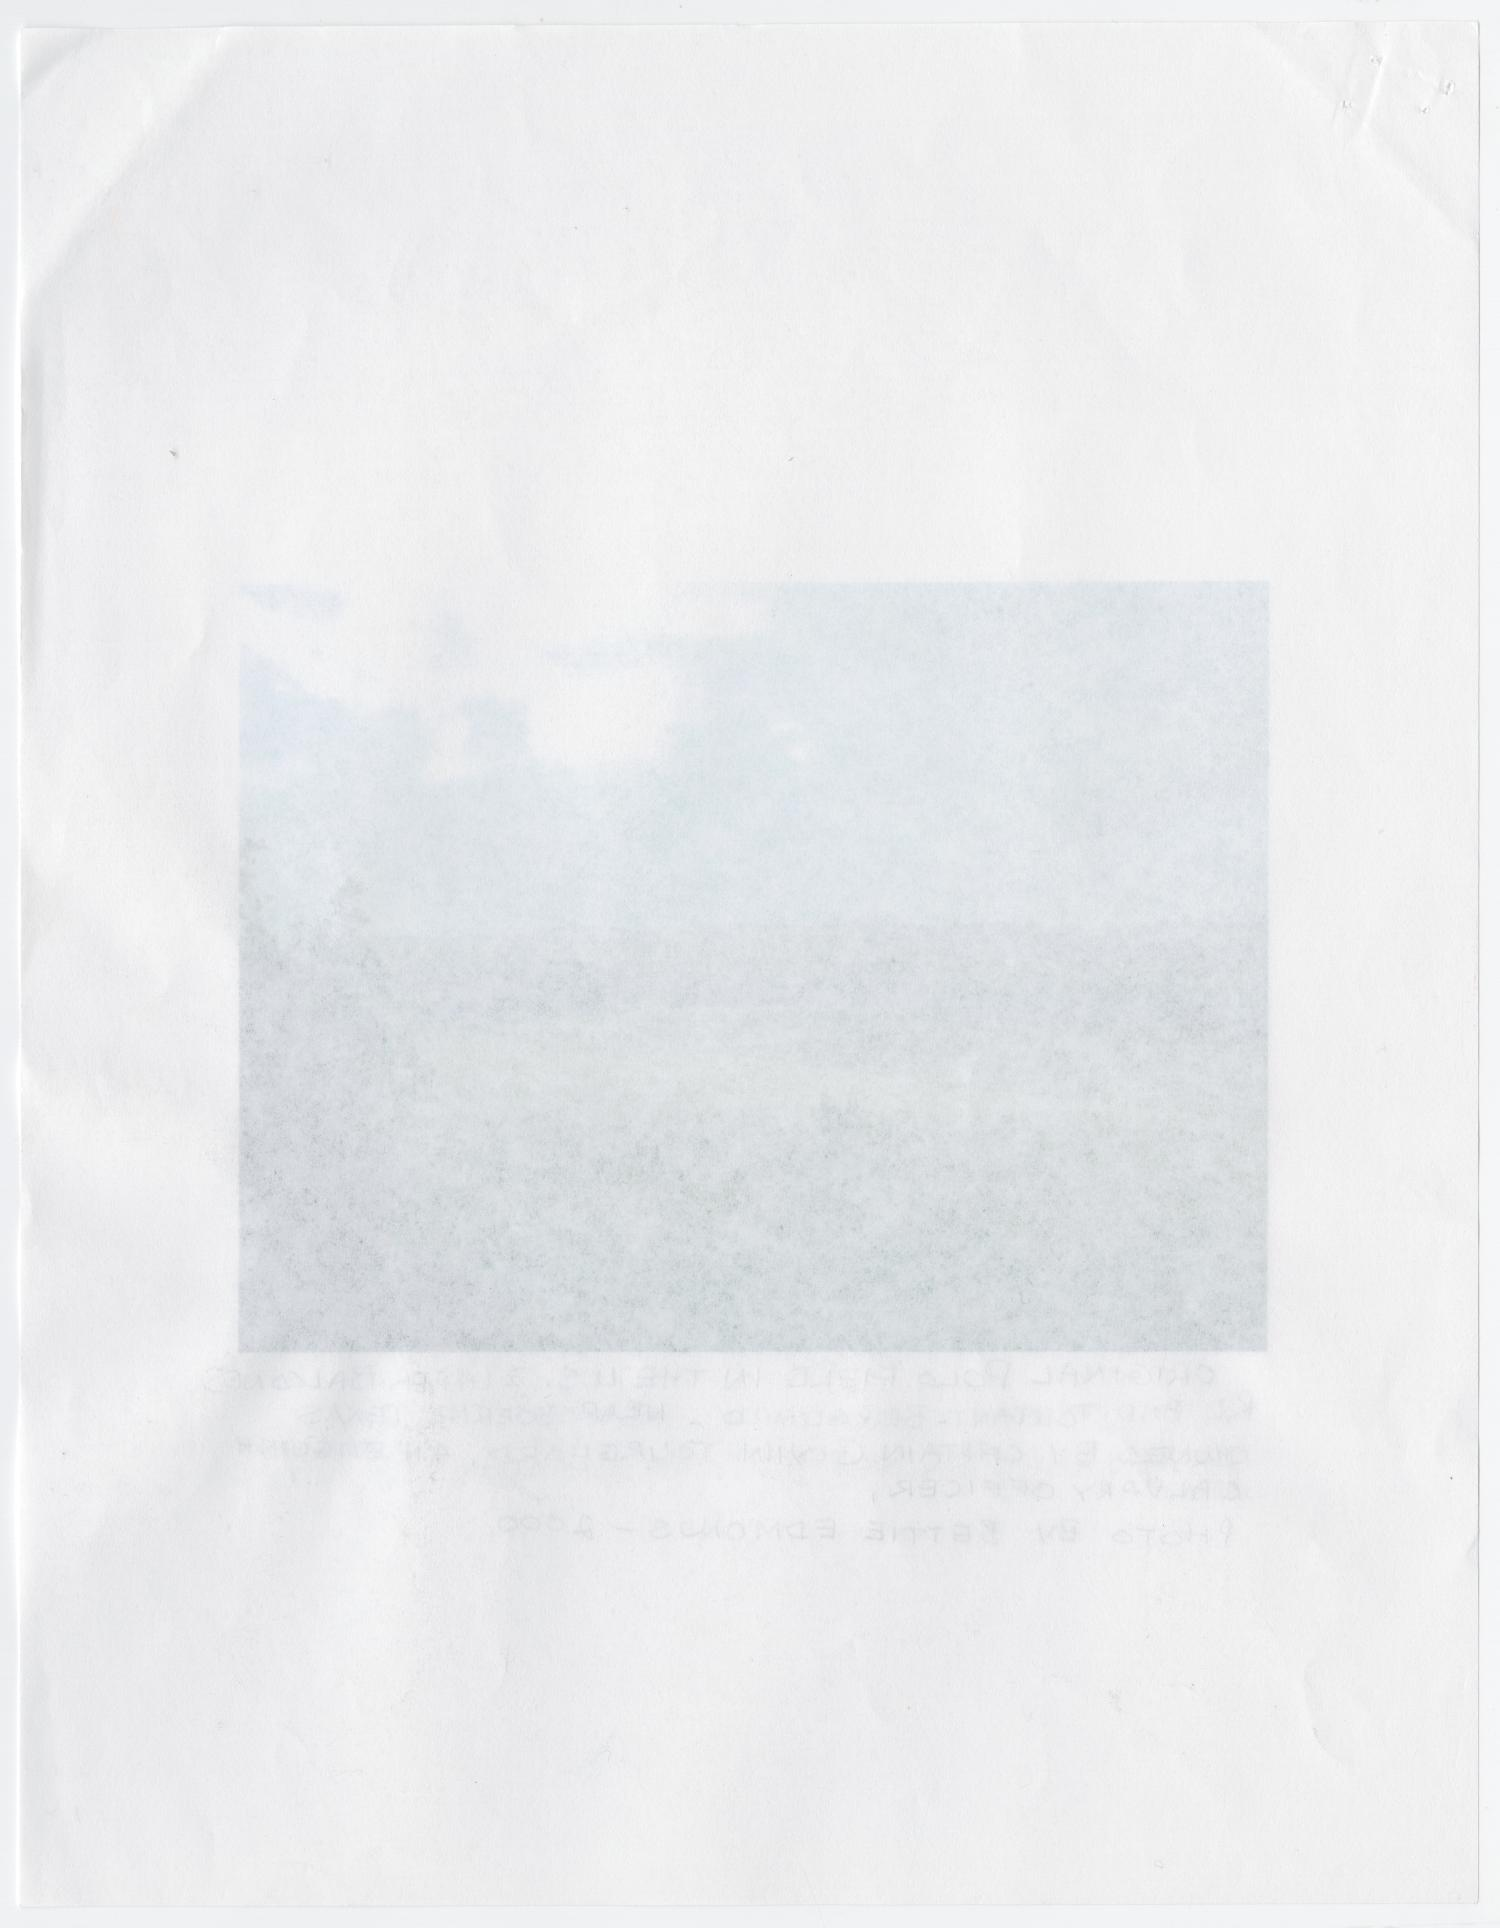 [Photocopy of Original Polo Playing Field Photograph]                                                                                                      [Sequence #]: 2 of 2